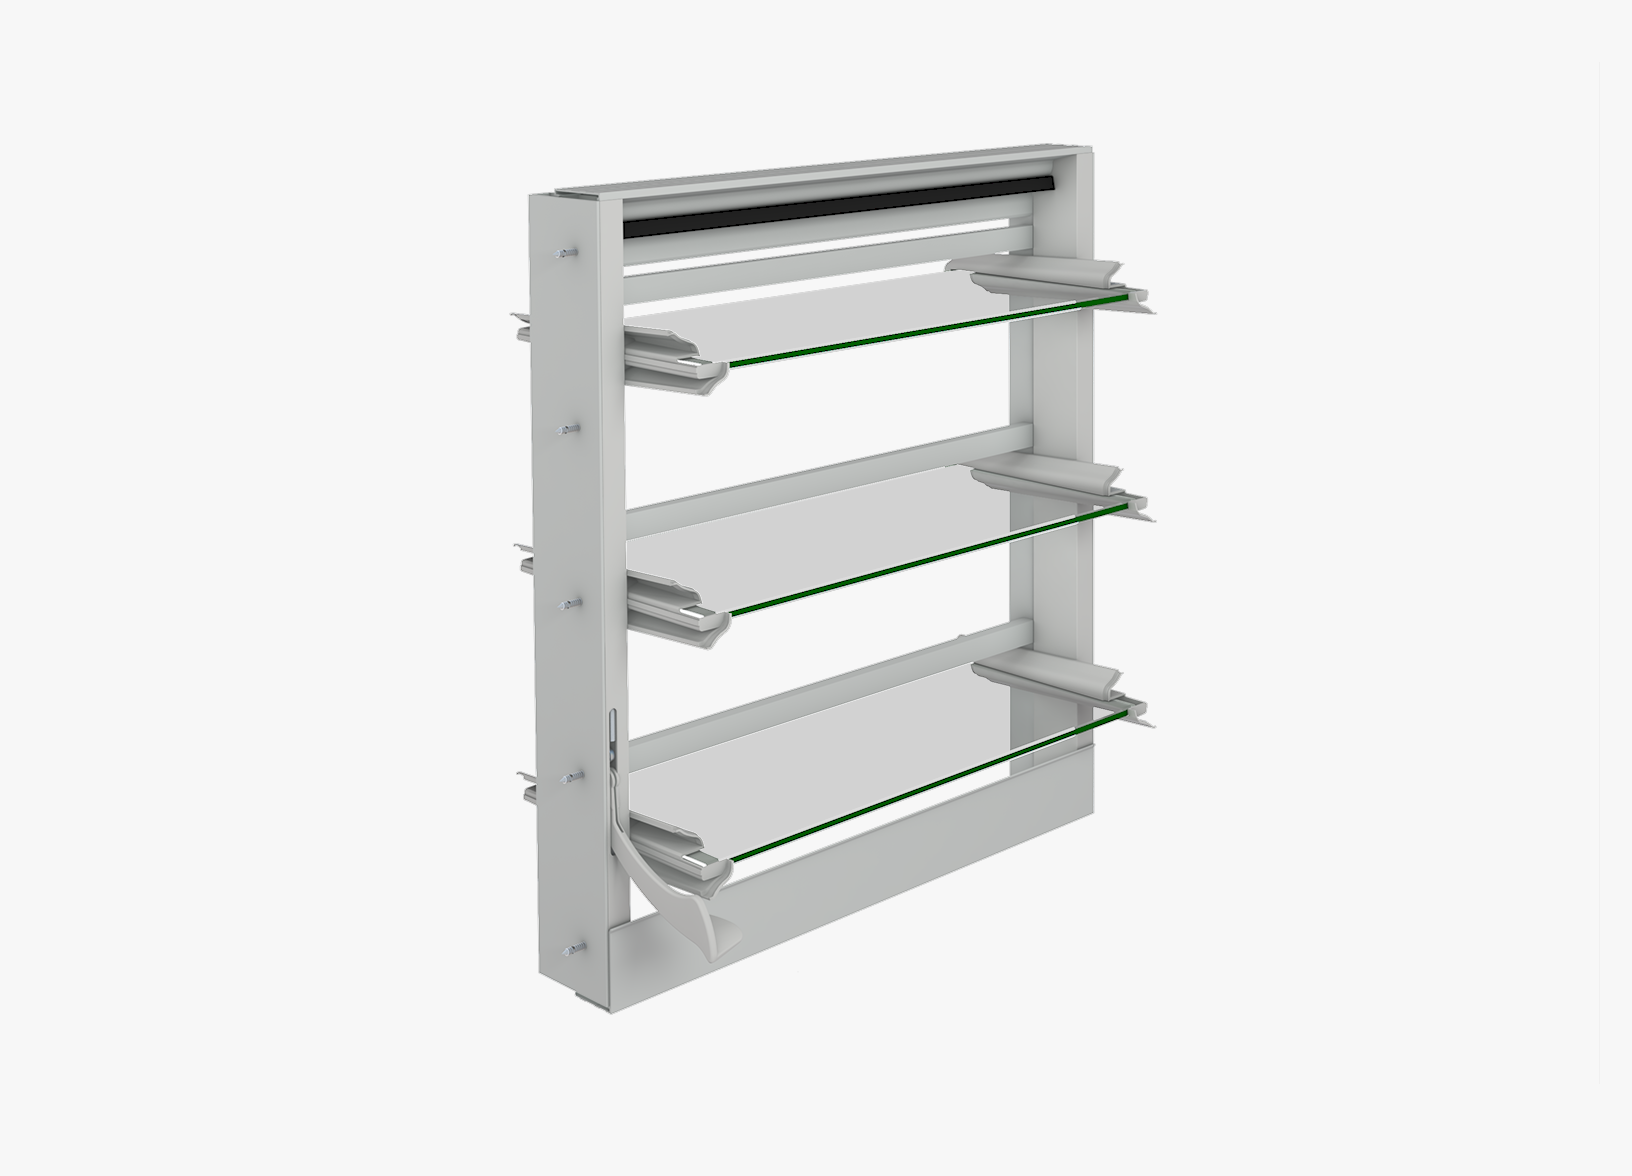 Assembled view of Altair Louvre Component System with D bar Security Jamb